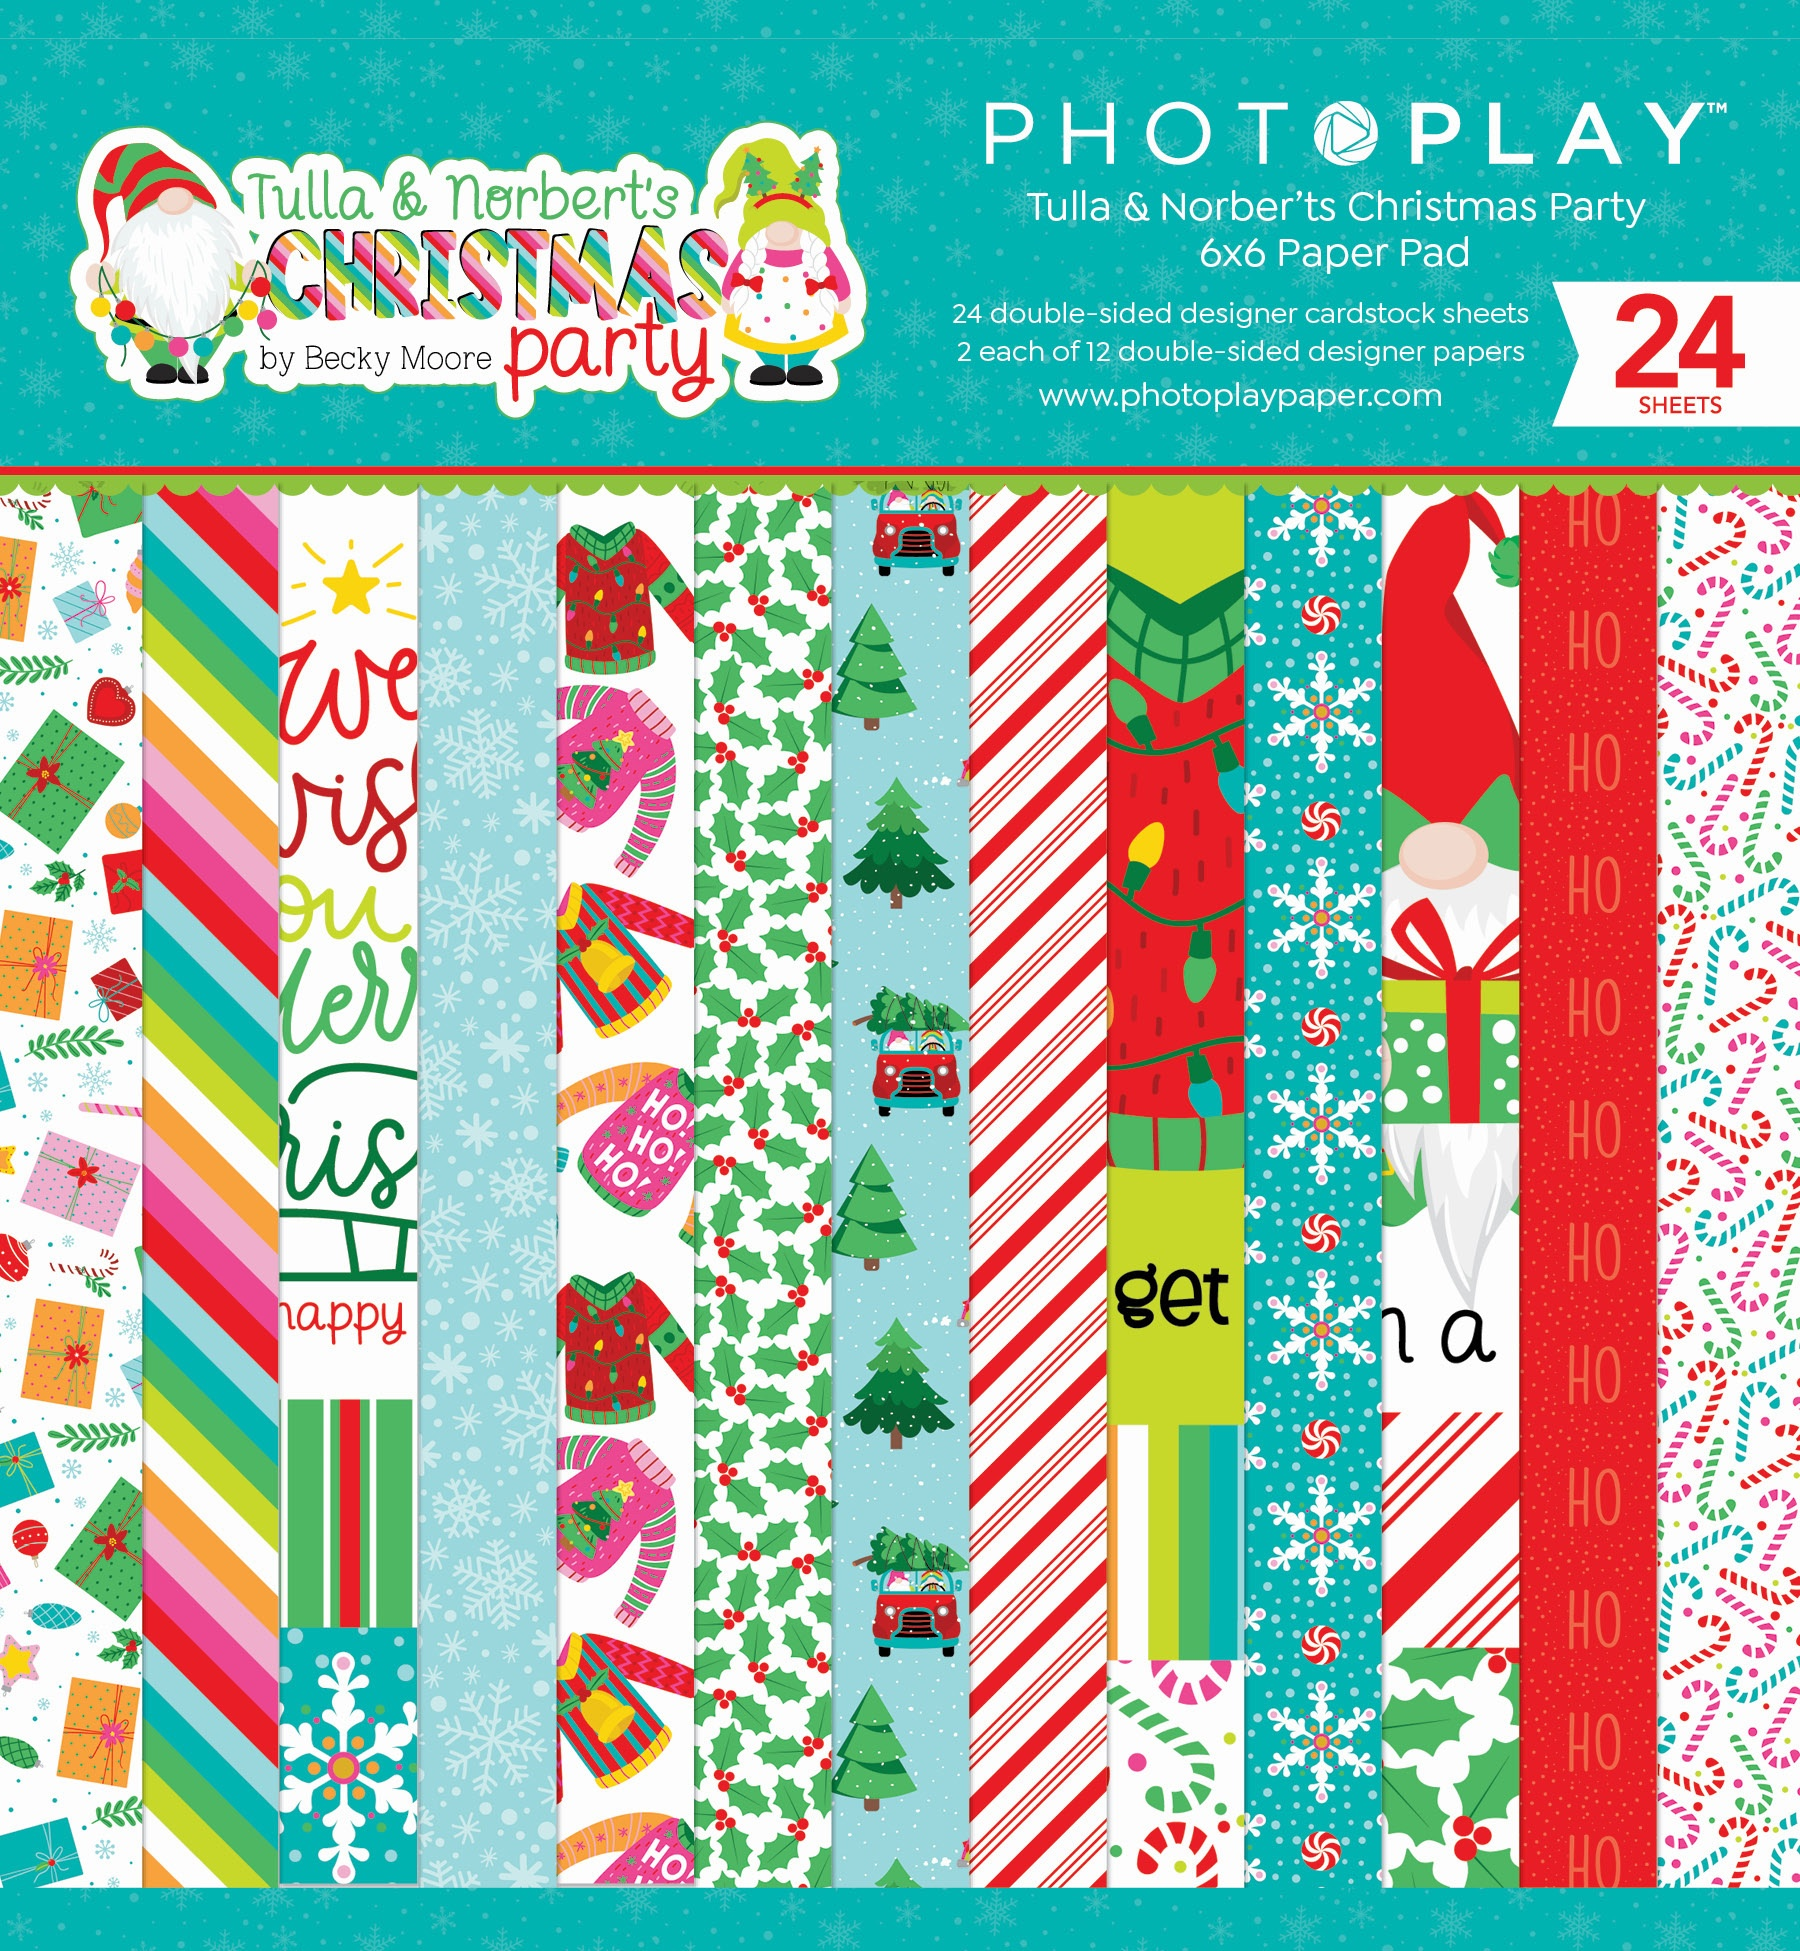 PhotoPlay Double-Sided Paper Pad 6X6 24/Pkg-Tulla & Norbert's Christmas Party